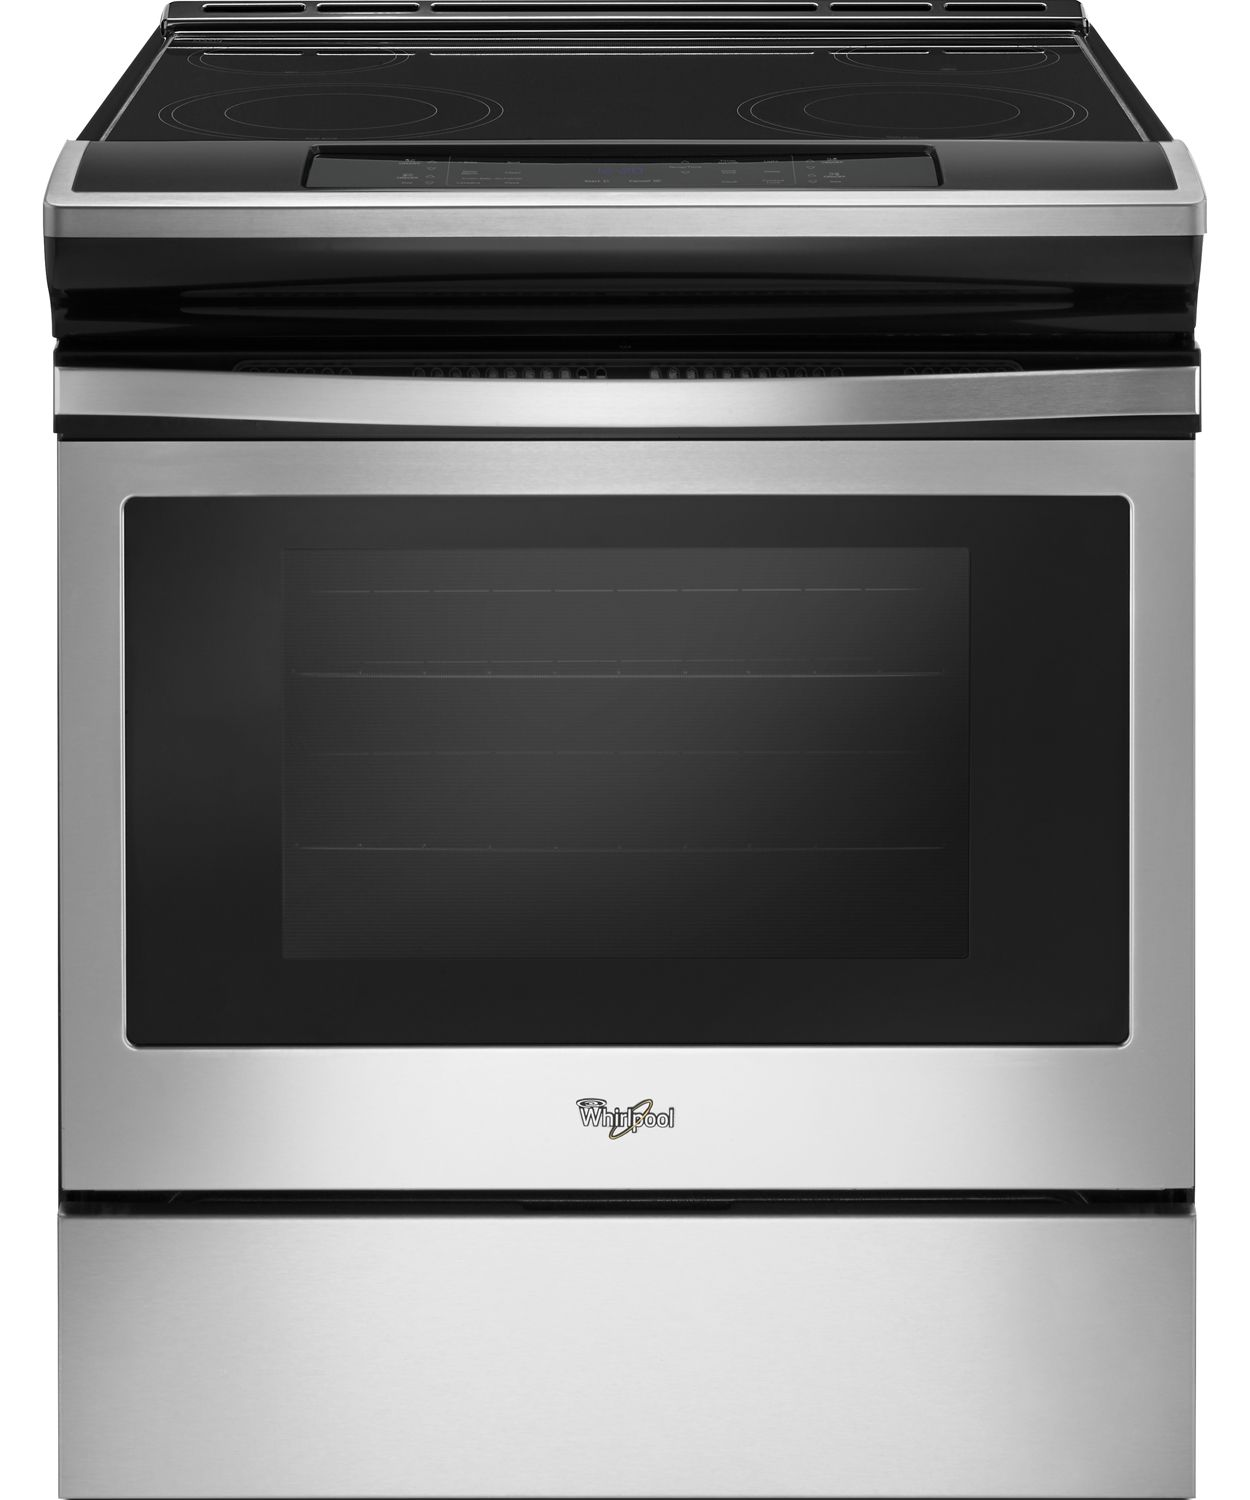 Whirlpool Stainless Slide In Electric Range Wee510s0fs